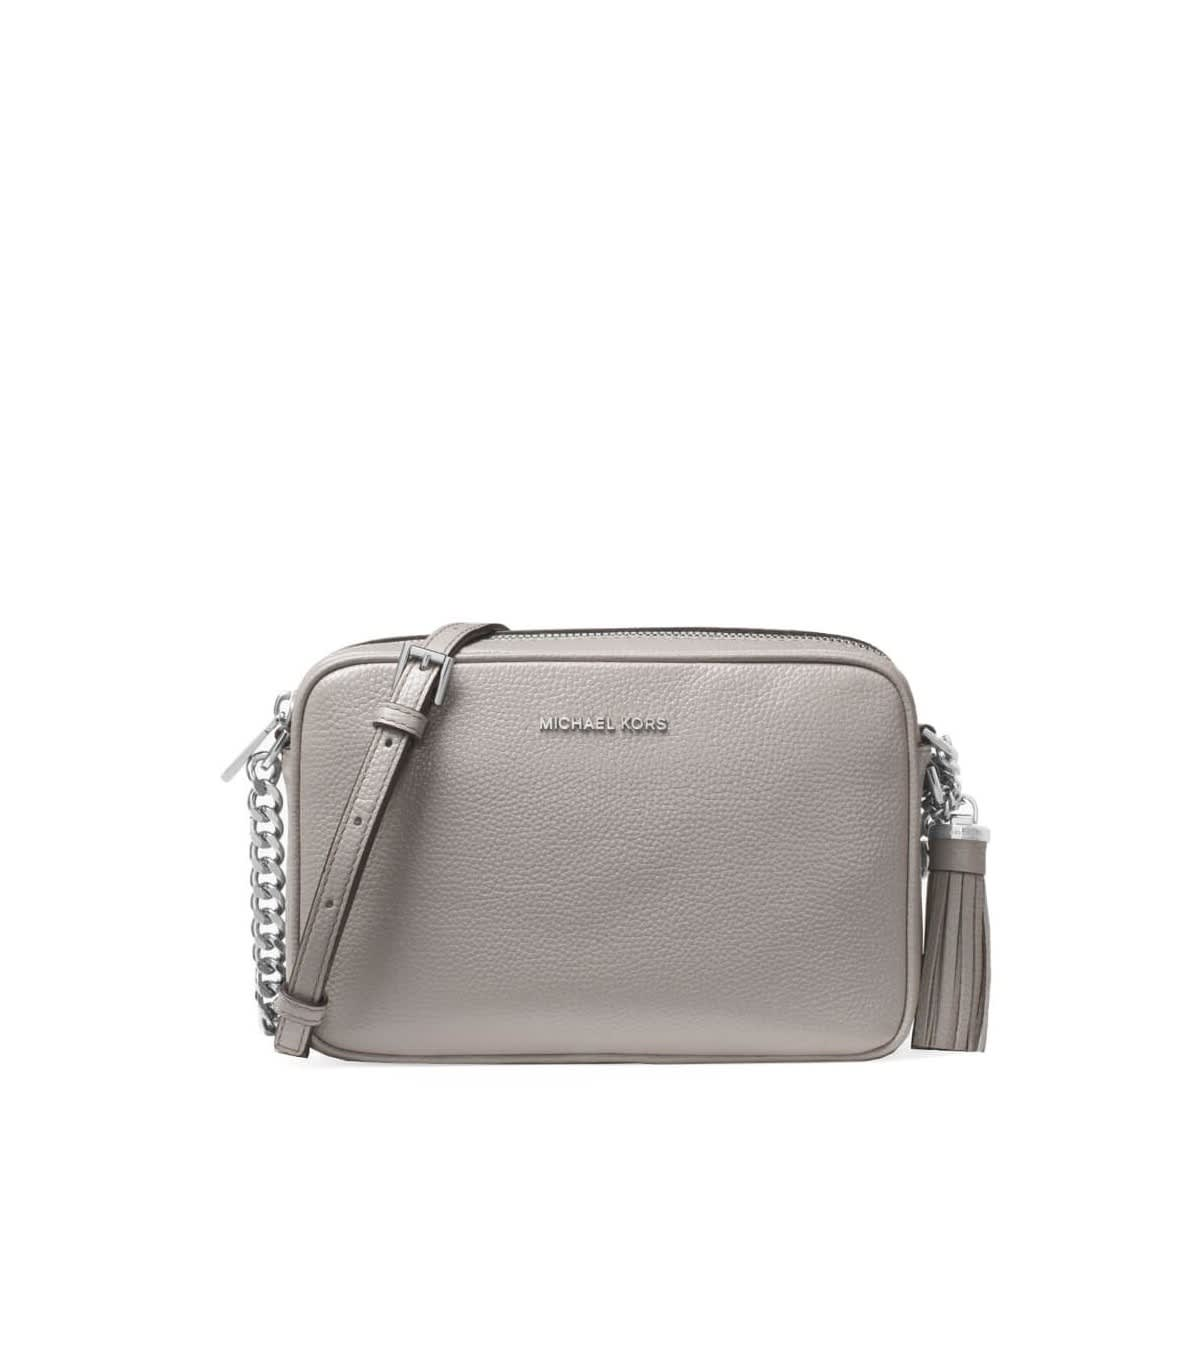 men/man super cute purchase authentic Best price on the market at italist | Michael Kors Michael Kors Ginny Pearl  Grey Medium Crossbody Bag